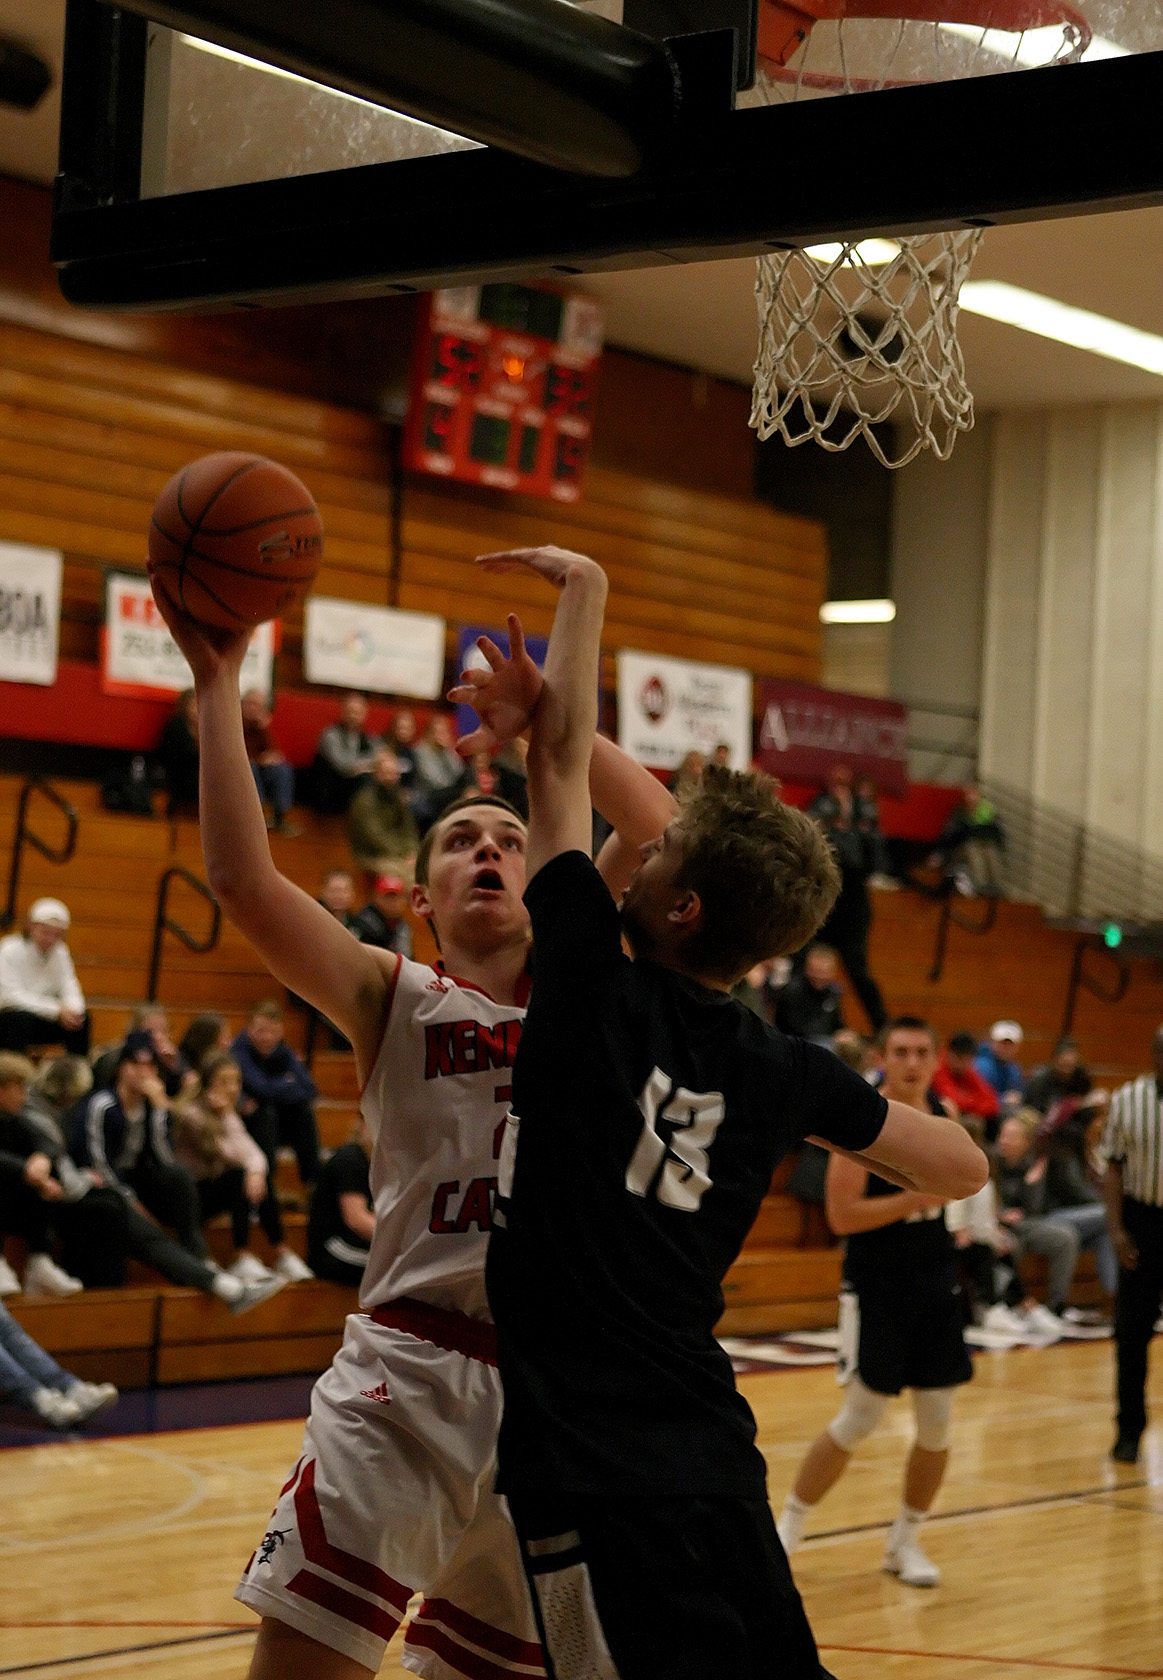 Michael Spitzer of Kennedy Catholic puts up a shot against Cascade Christian's Noah Wilkins.